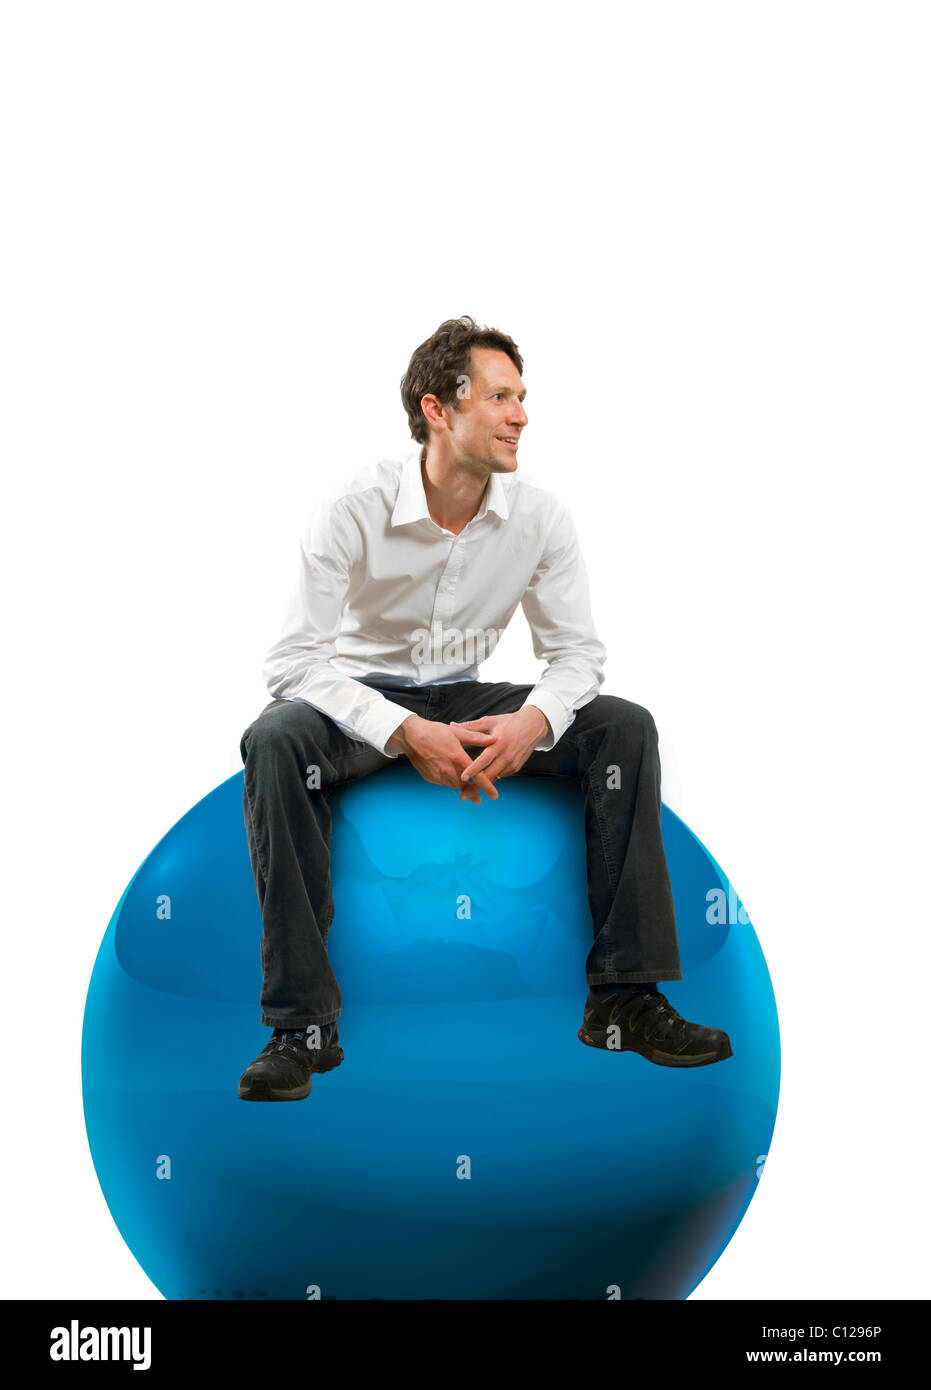 Man with oversized balls